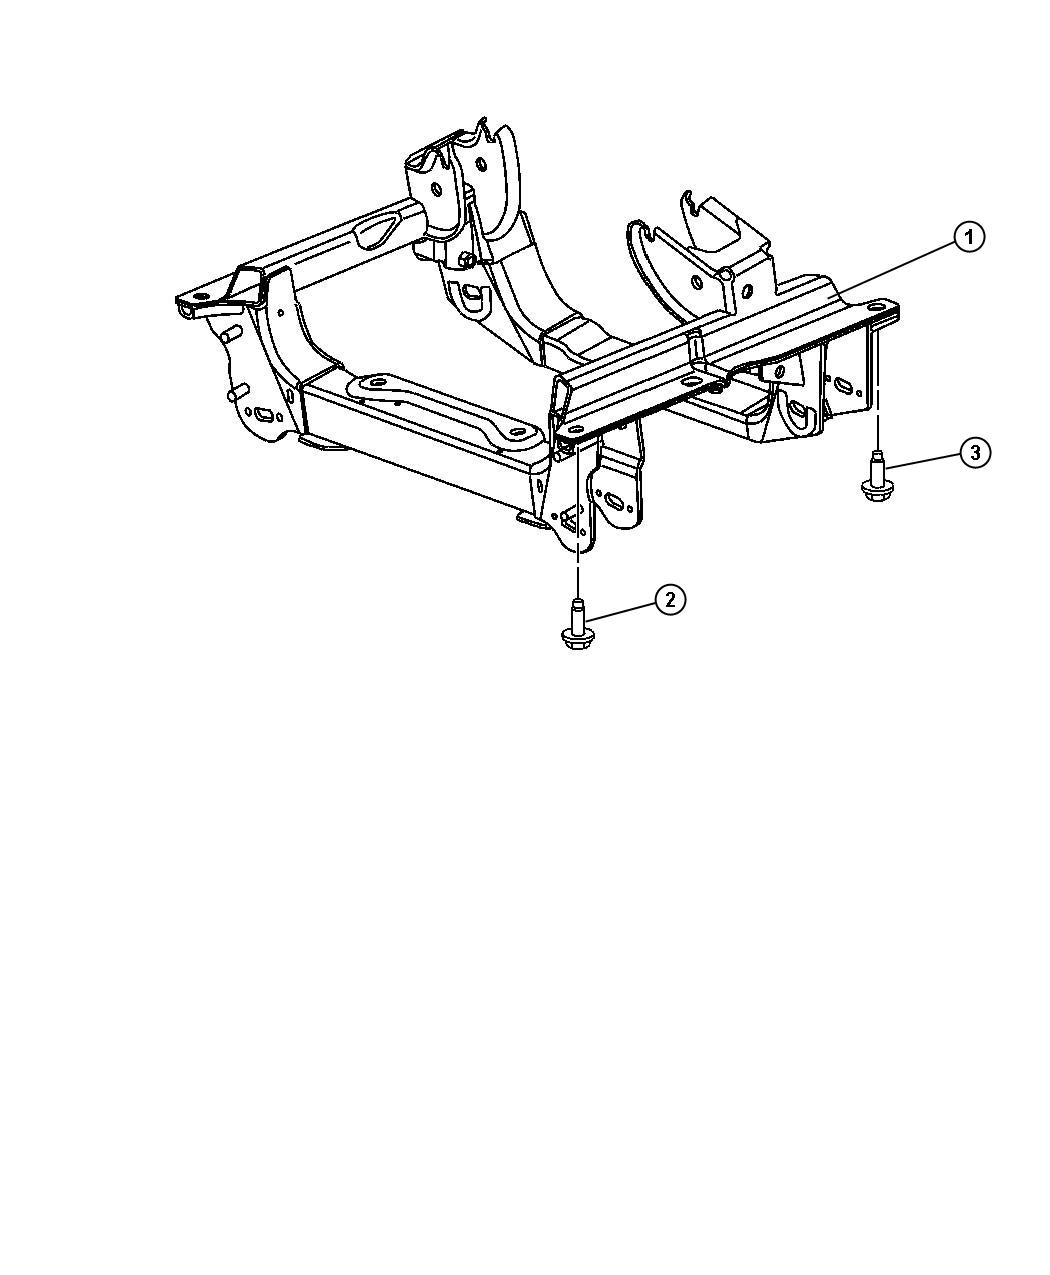 Jeep Liberty Cradle Front Suspension All Turbosel